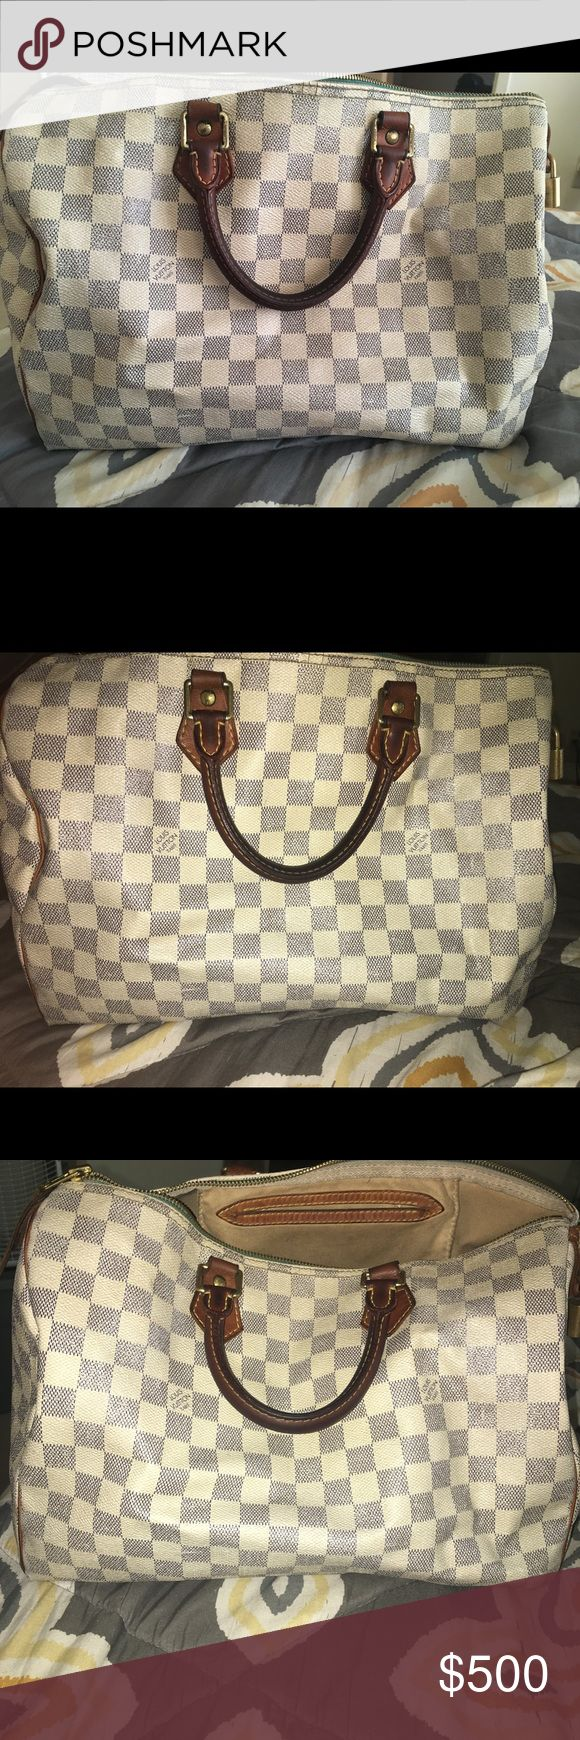 AUTHENTIC LOUIS VUITTON SPEEDY 35 DAMIER AZUR Hi!! I have had this bag for over 6 yrs or so. STILL IN GREAT CONDITION!! It's literally normal wear and tear. The inside is clean.. and it has its original lock and key with it as well... slightly discolored again from normal wear and tear (and age) but still has ALOT of life in this bag! Louis Vuitton Bags Satchels